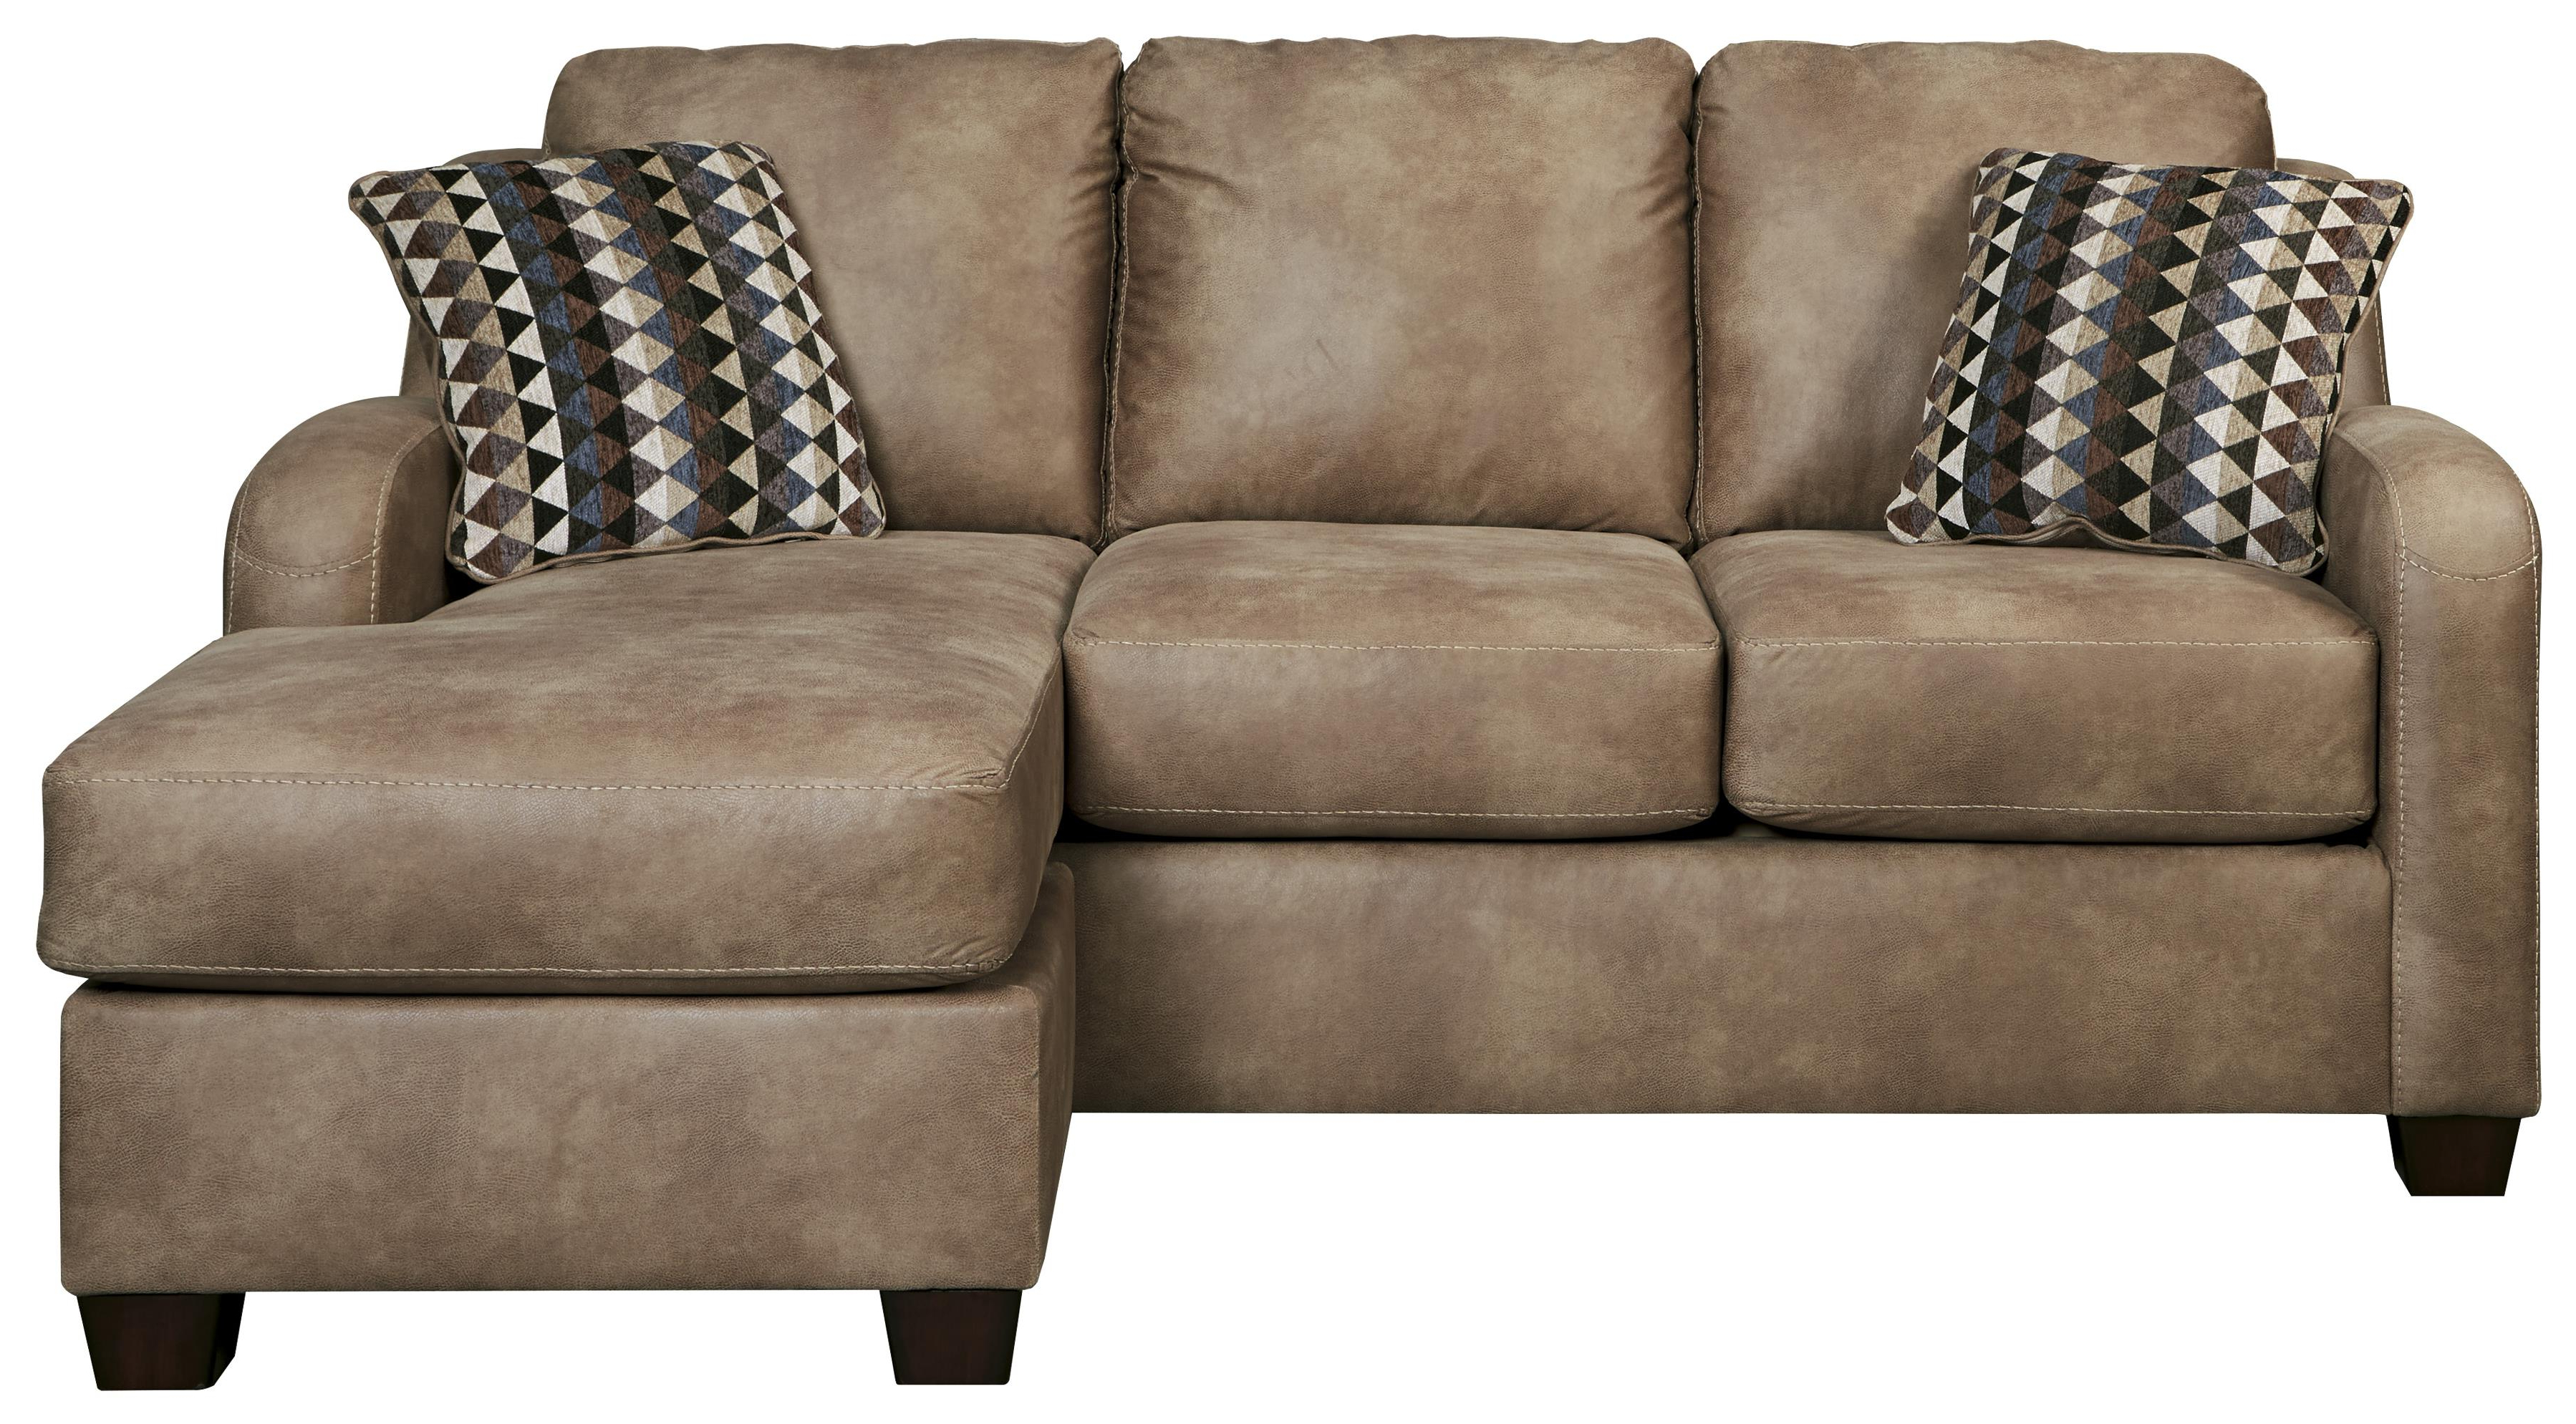 Benchcraft Alturo 6000318 Contemporary Faux Leather Sofa Chaise Pertaining To Trendy Chaise Sofa Chairs (View 2 of 20)